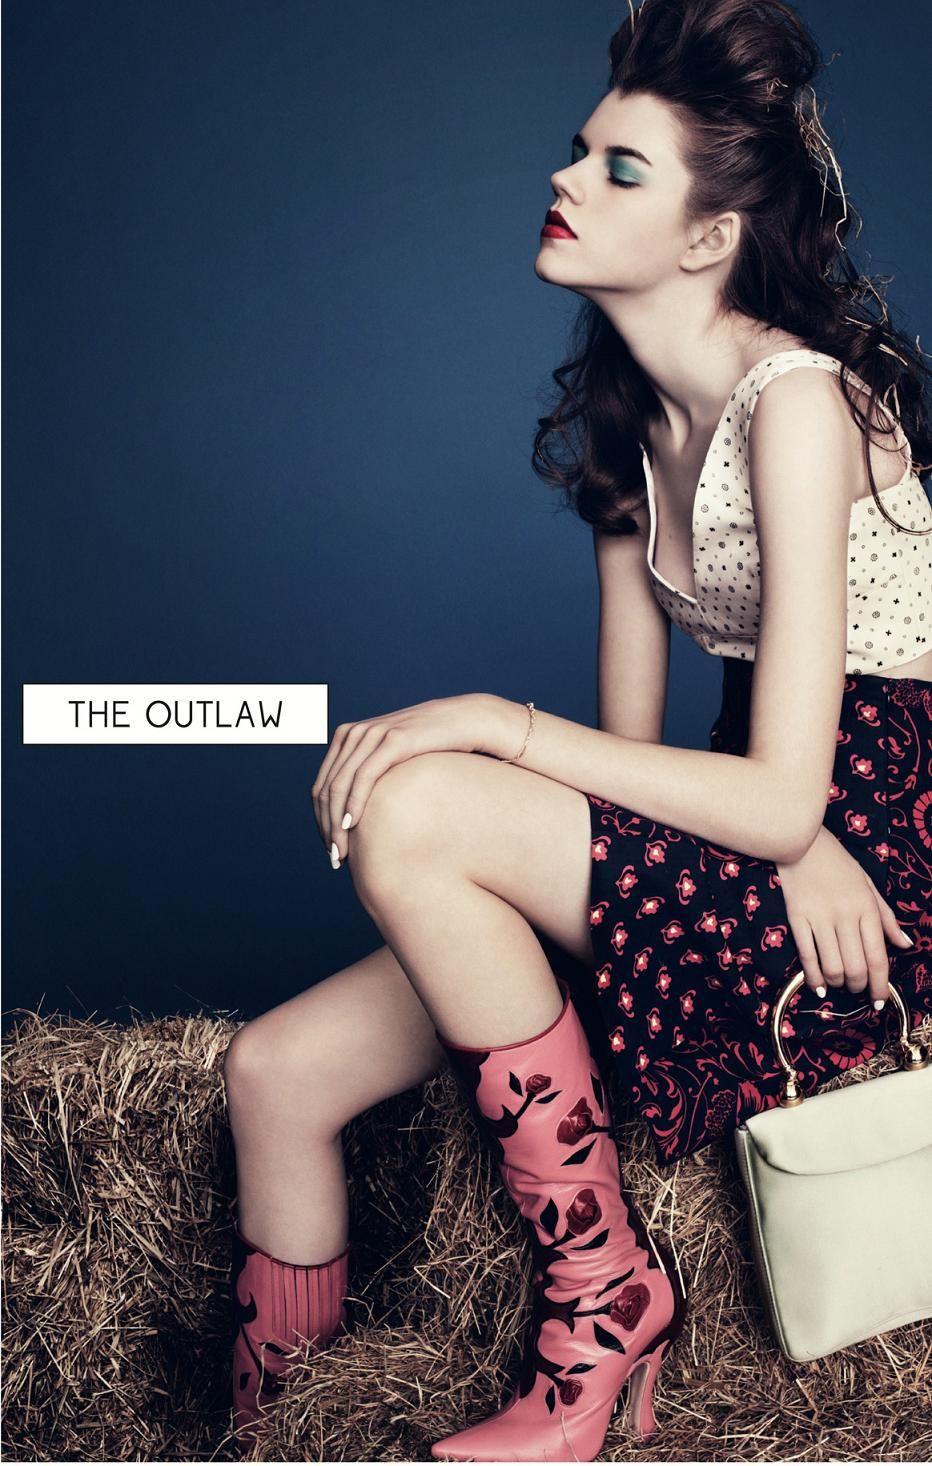 Antonia Wesseloh by Scott Trindle (The Outlaw - Dazed & Confused April 2012)